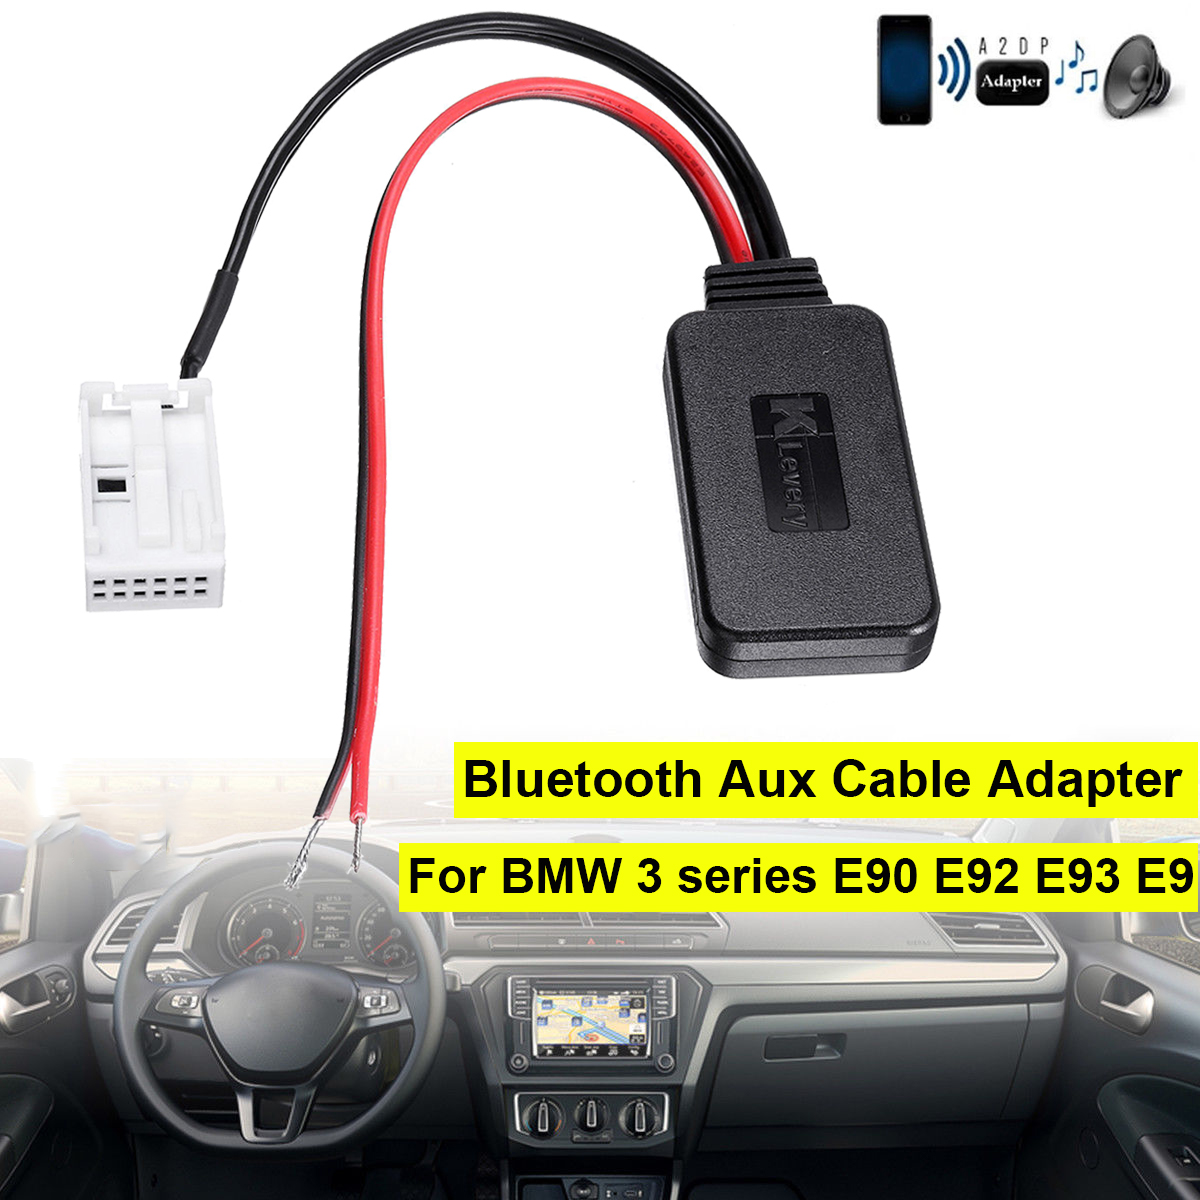 Bluetooth Module Adapter Aux Cable For Vw Rcd510 Rcd310: Bluetooth Module Radio 12 Pin Aux Cable Adapter For BMW 3